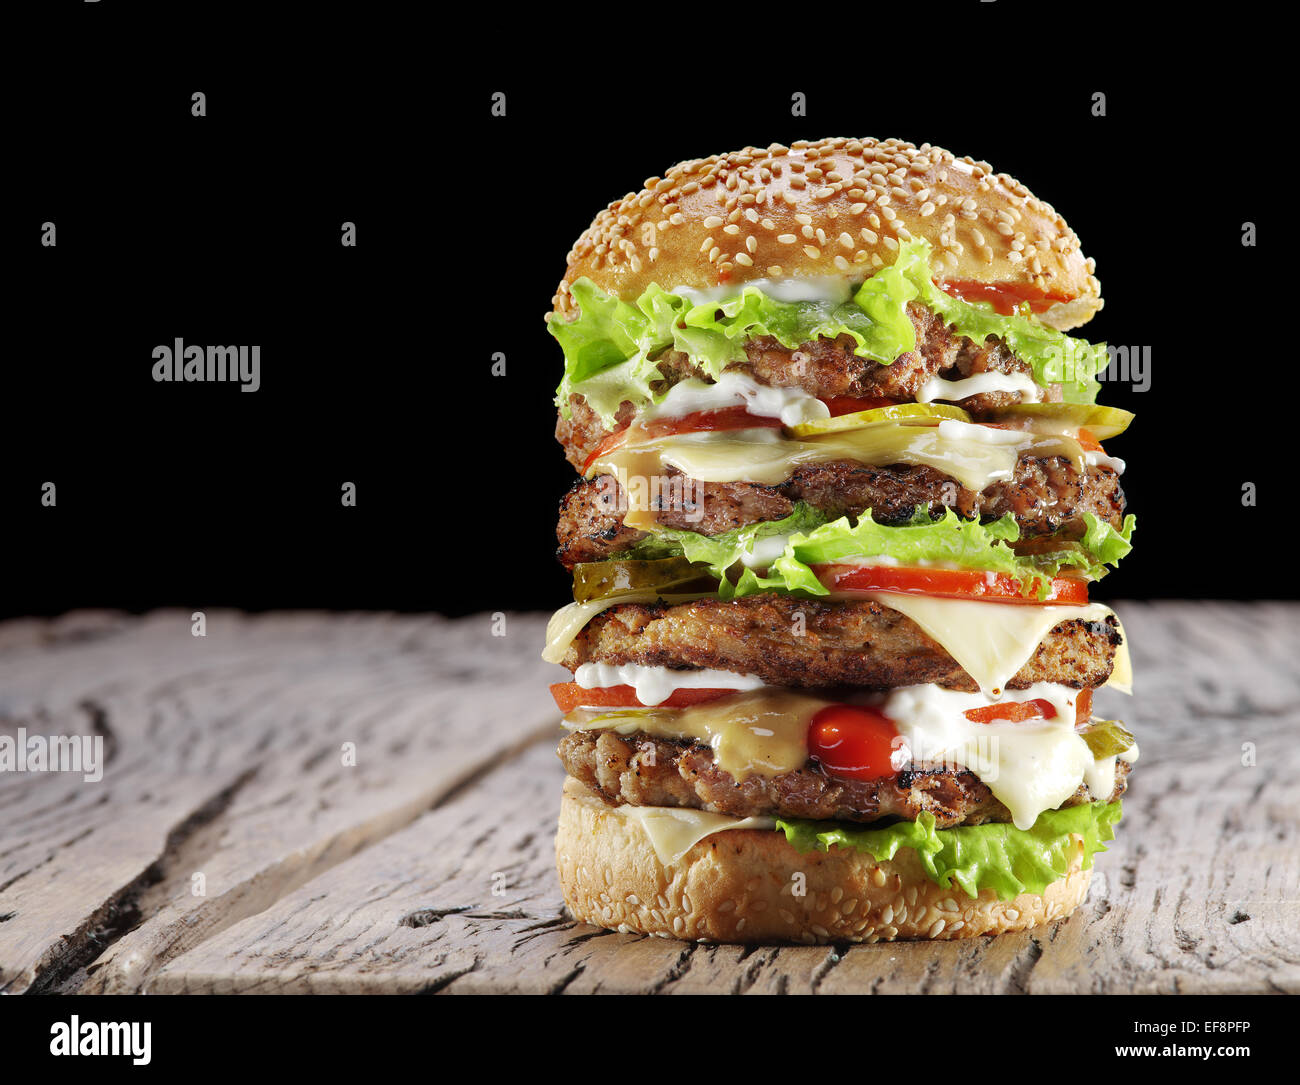 Hamburger on old wooden table. - Stock Image